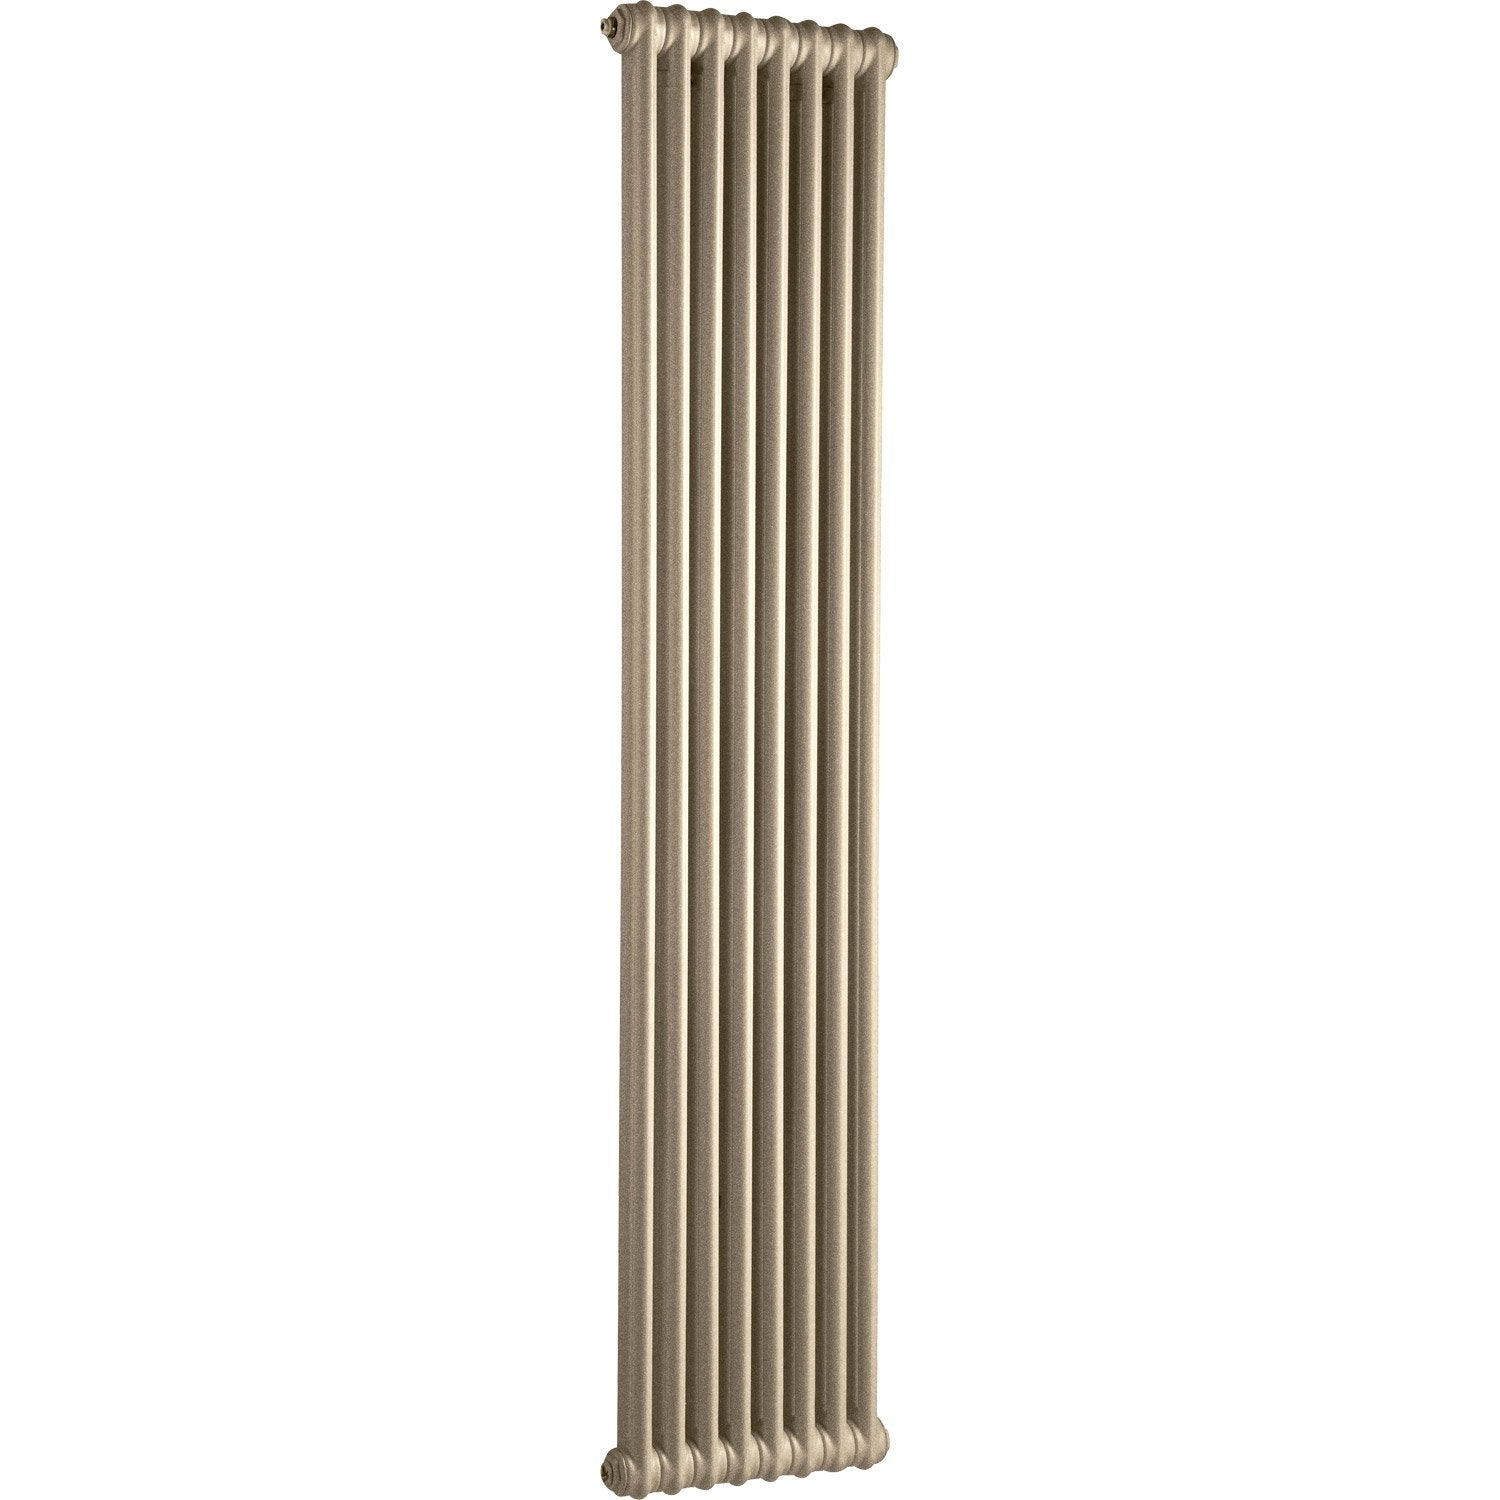 radiateur chauffage central acier tesi 2 sunstone 994w leroy merlin. Black Bedroom Furniture Sets. Home Design Ideas